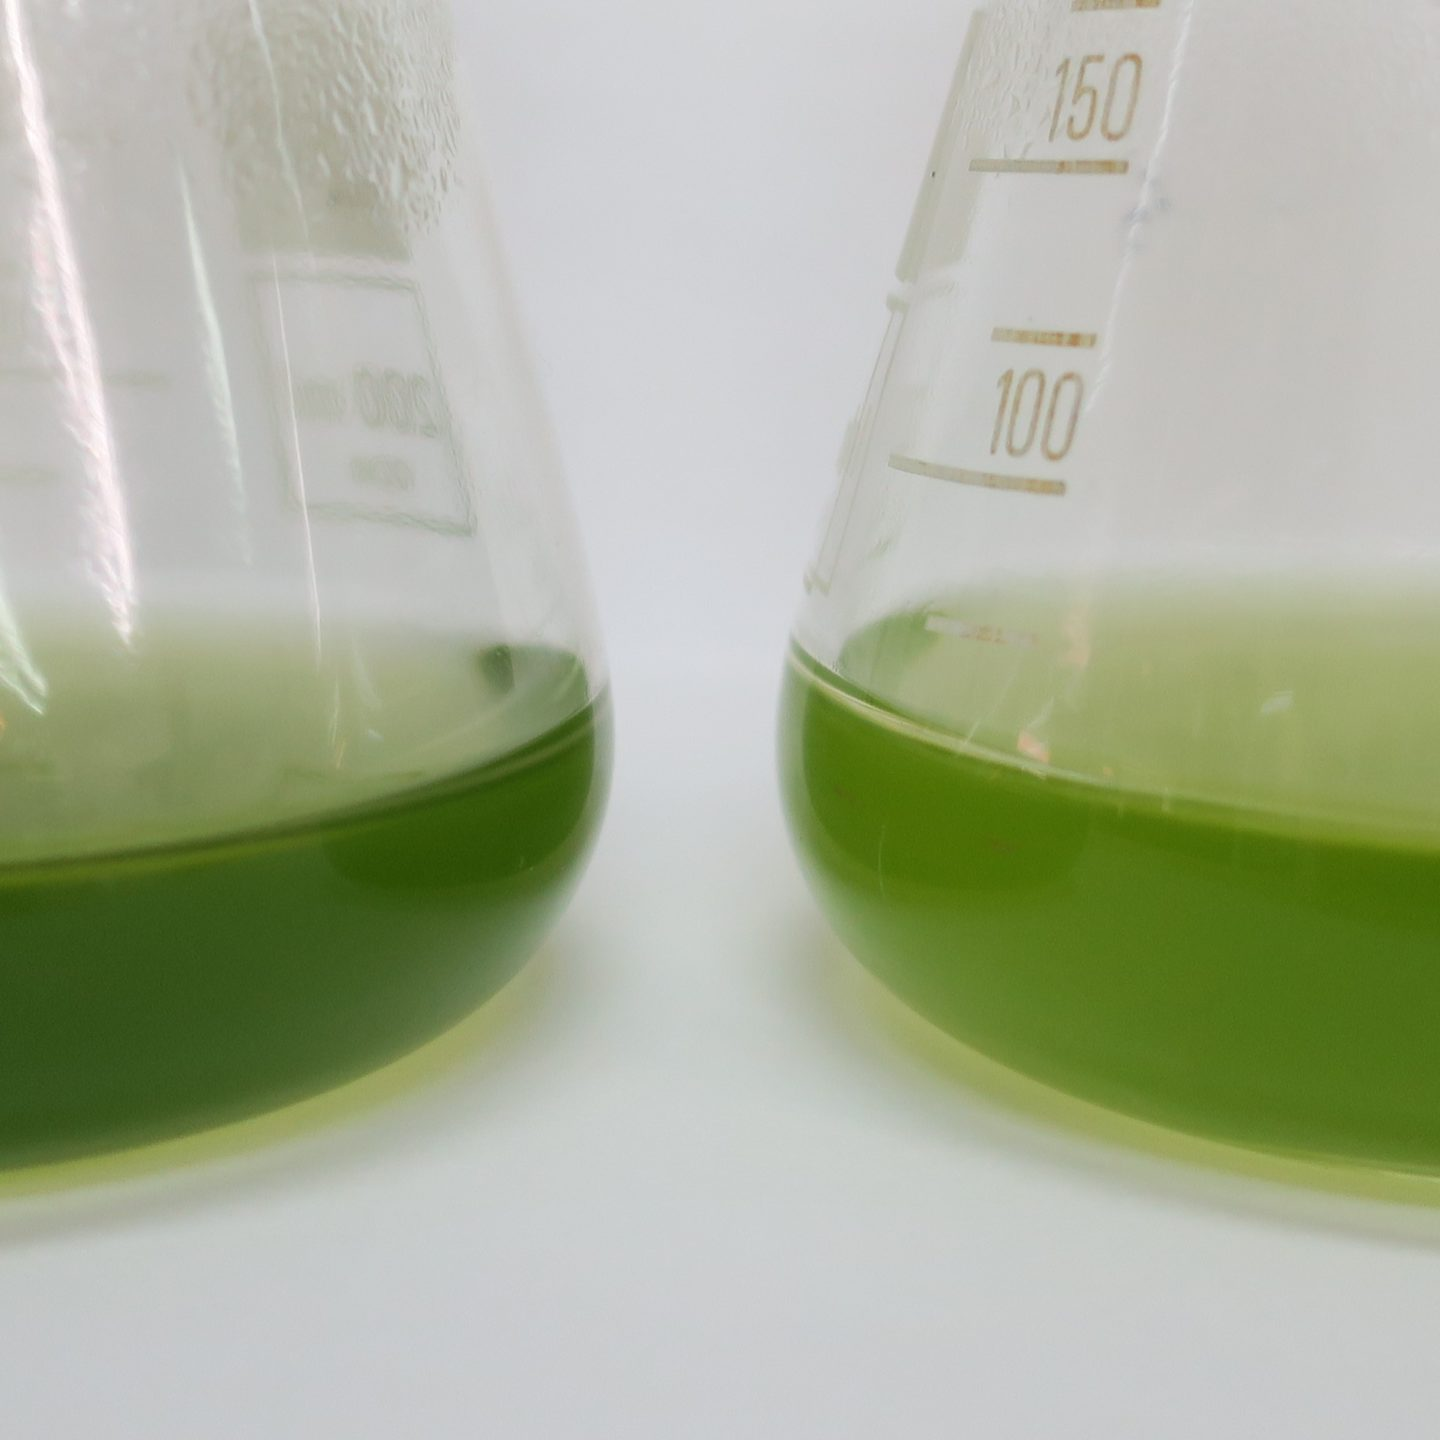 Cyanobacteria could revolutionize the plastic industry